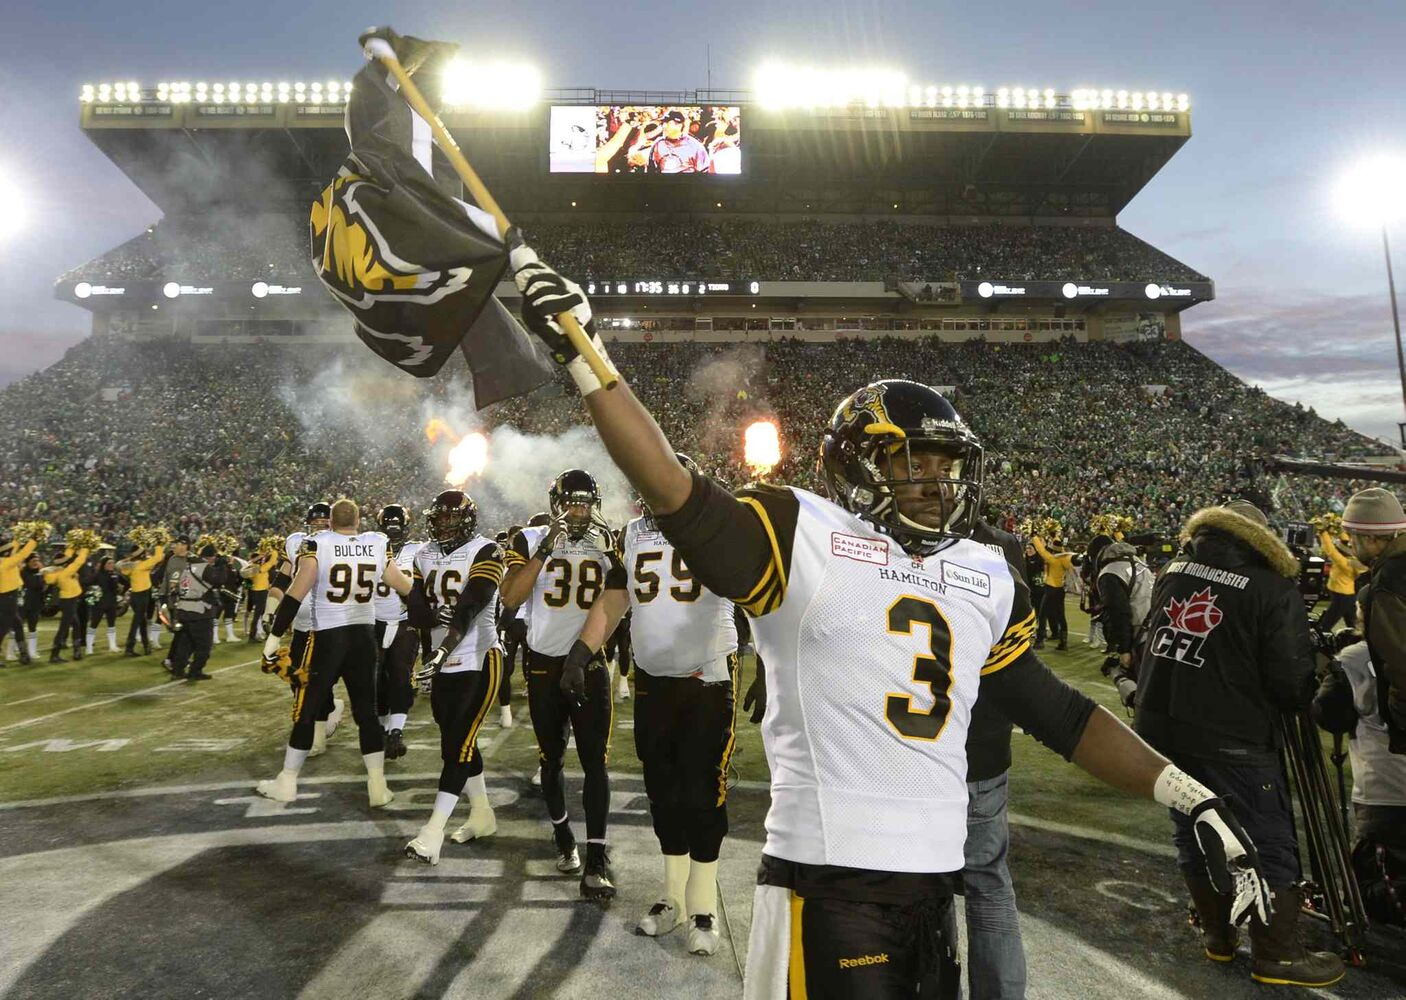 Hamilton Tiger-Cats linebacker Marc Beswick (3) leads his team onto the field at the Grey Cup Sunday. (Frank Gunn / The Canadian Press)